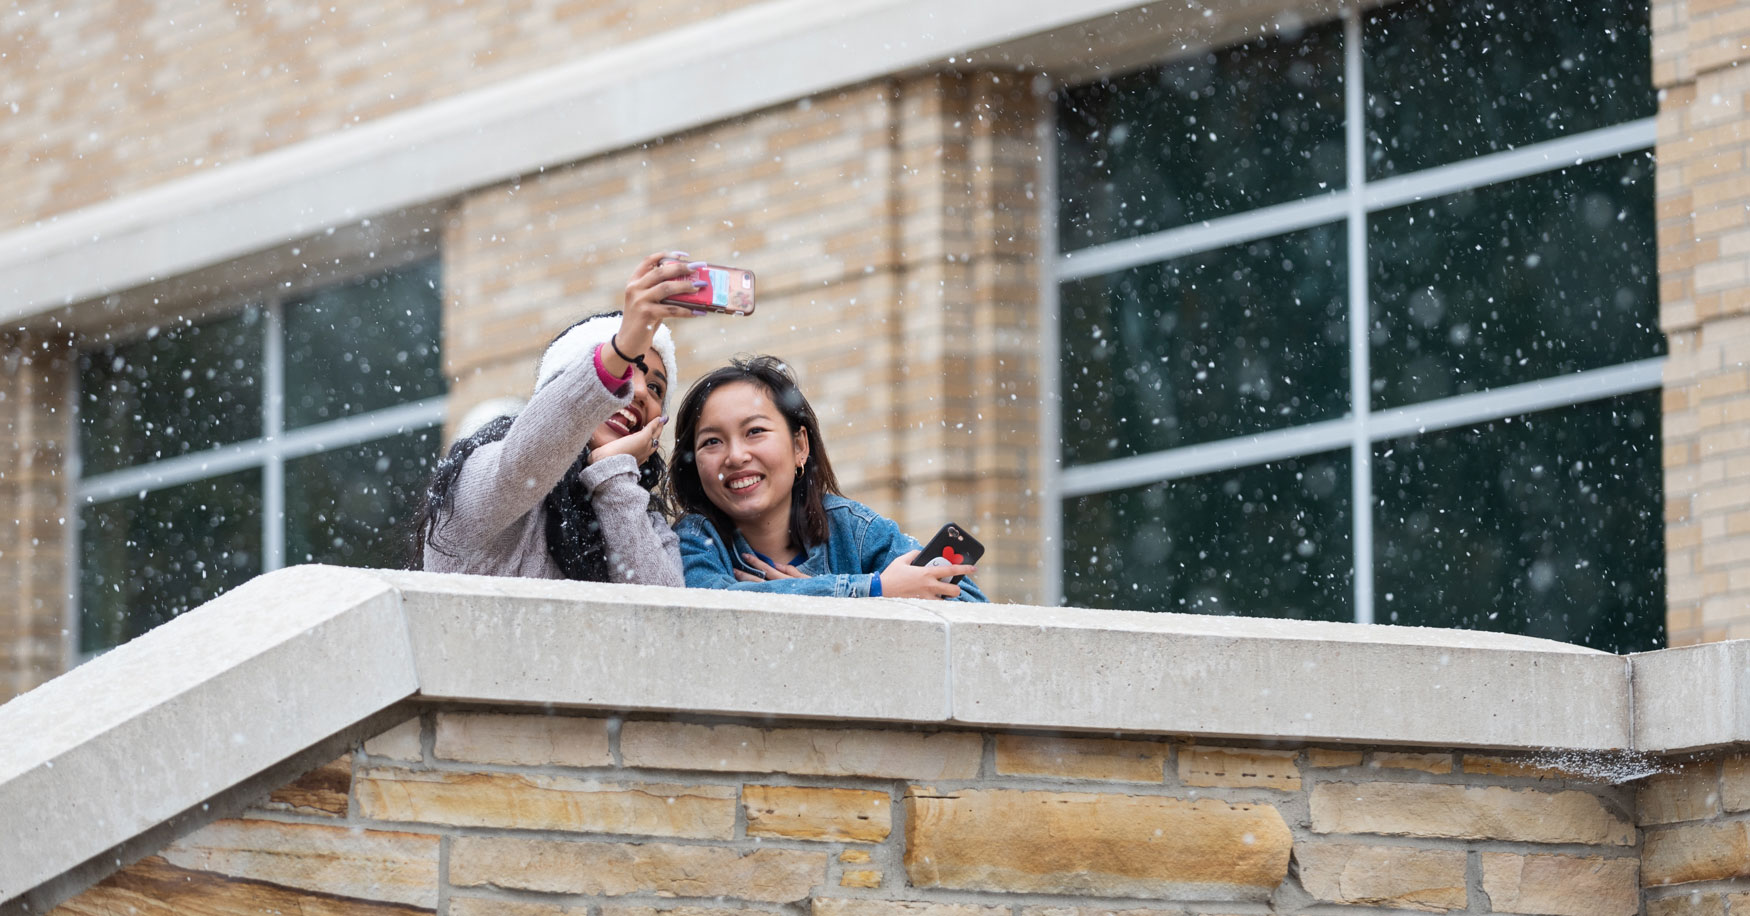 Students taking a selfie in the snow